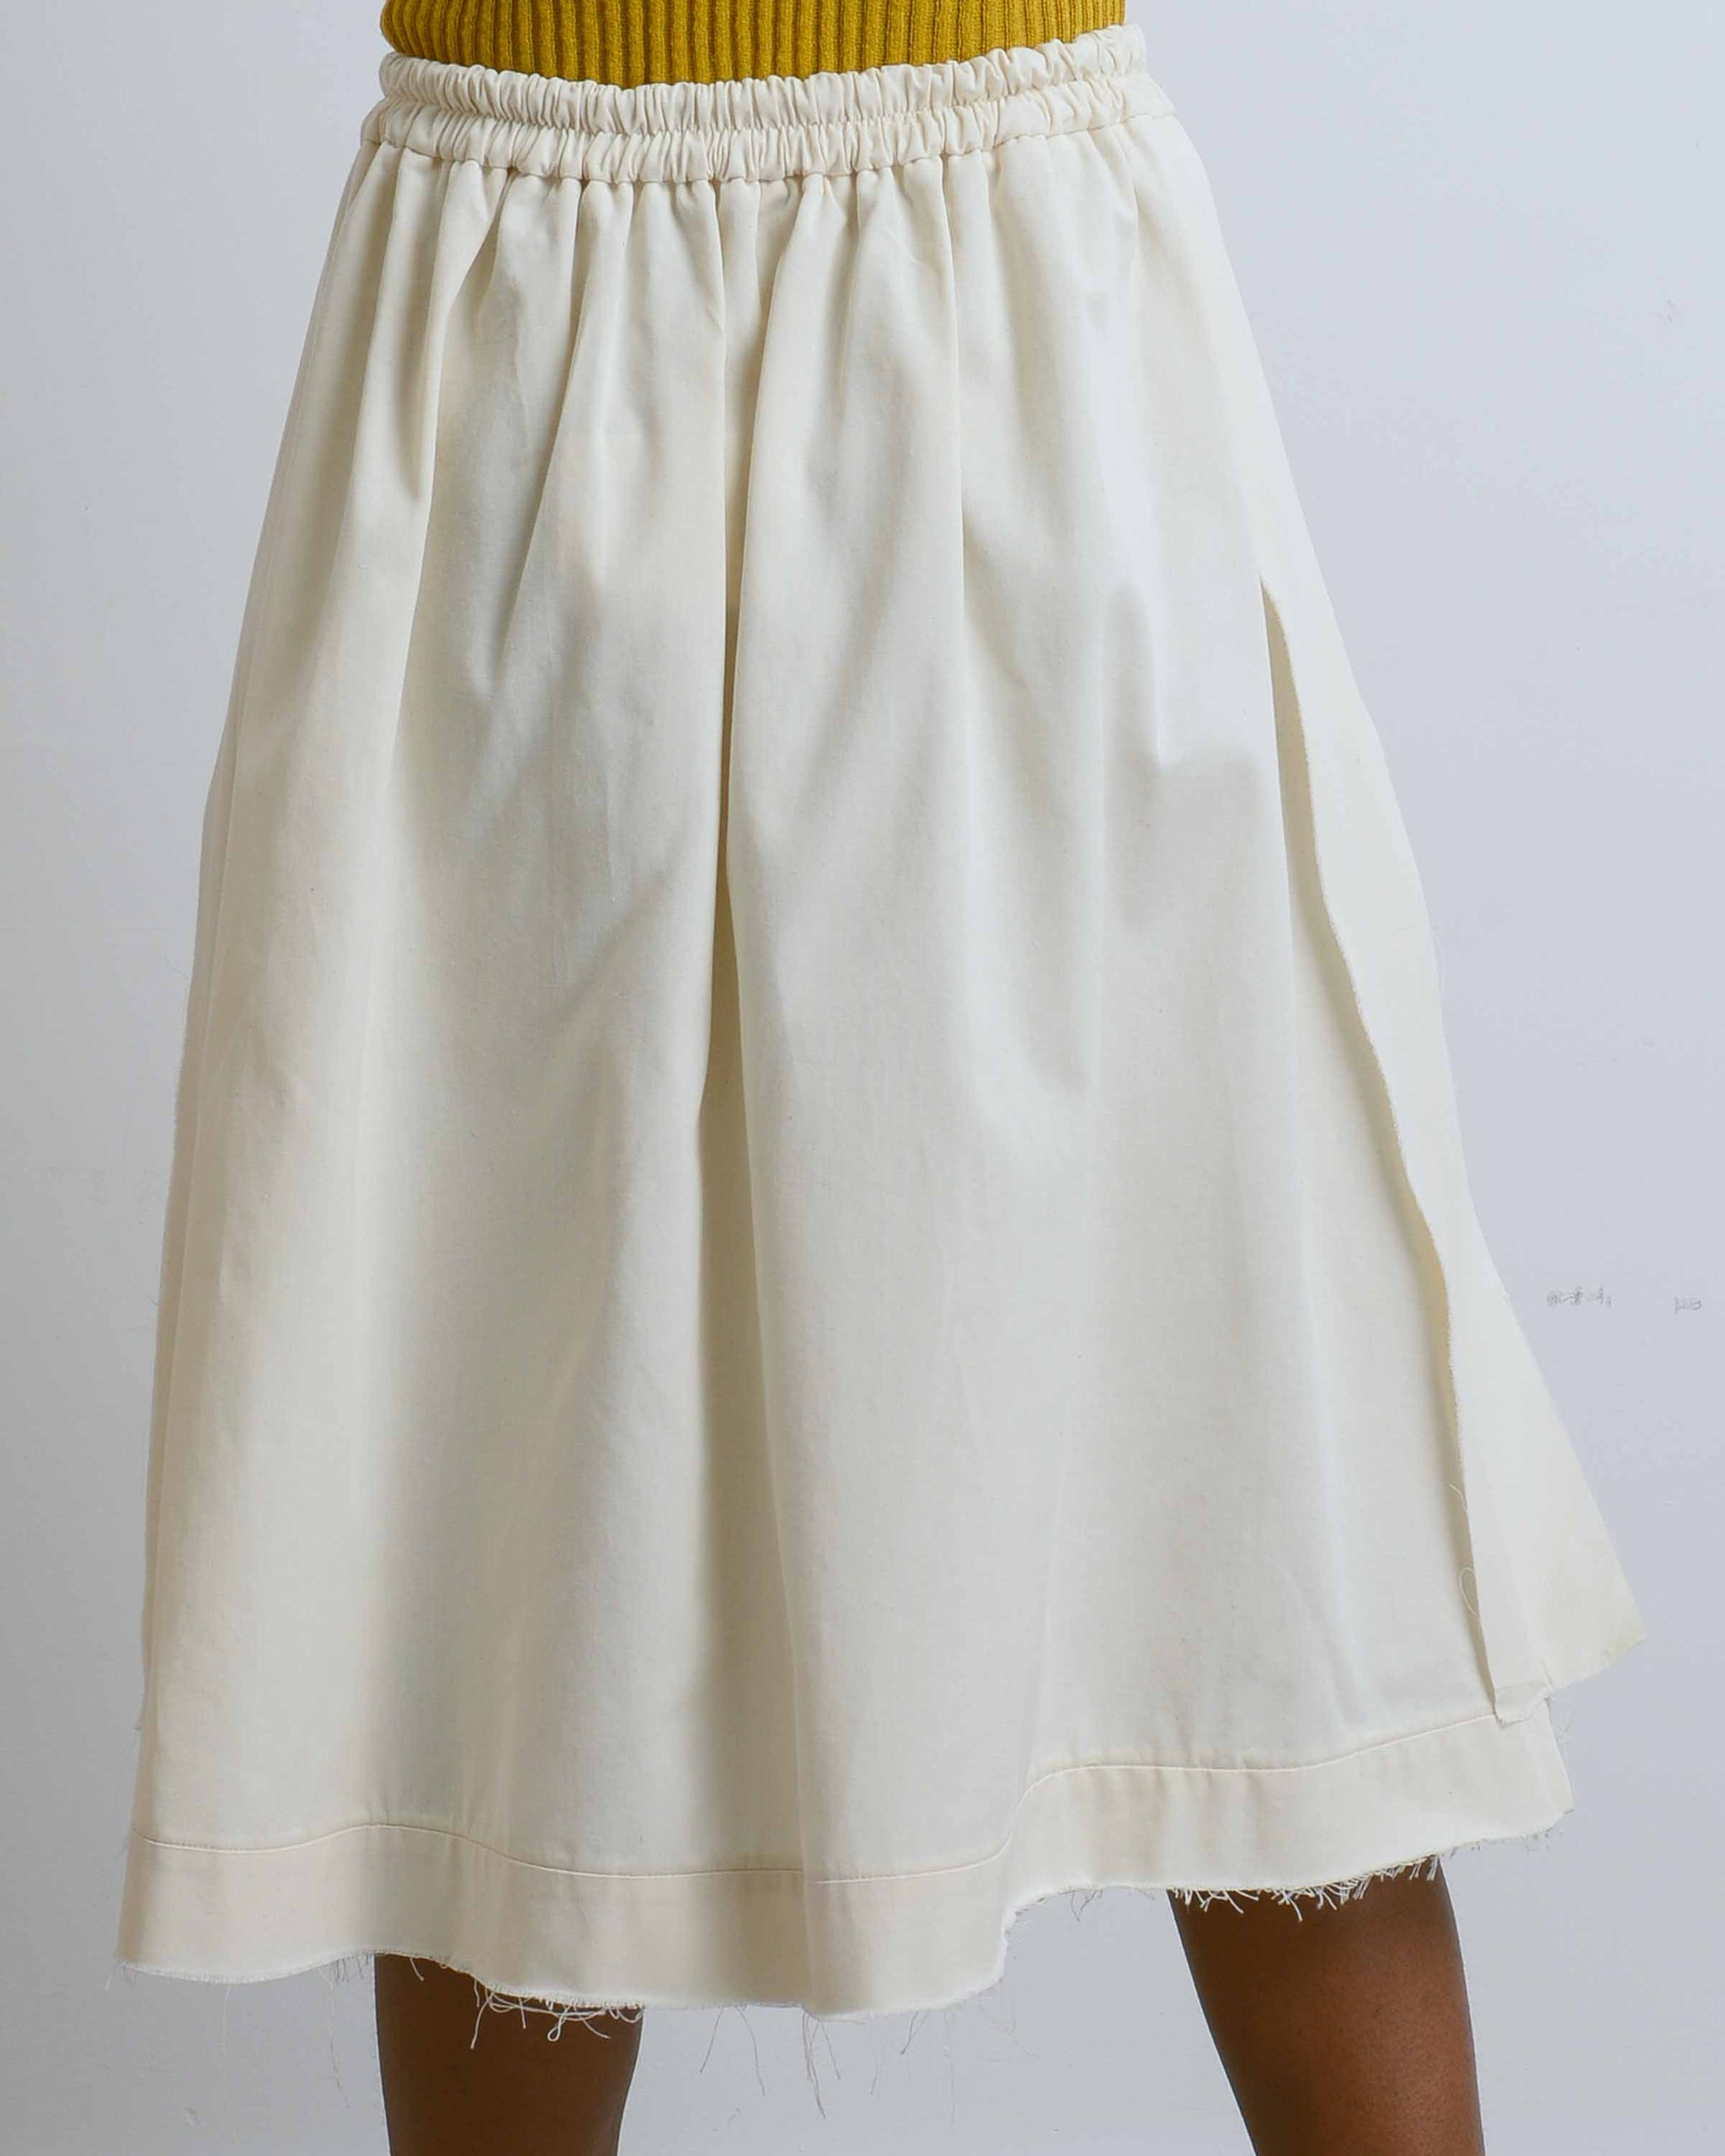 Pull On Raw Seam Skirt